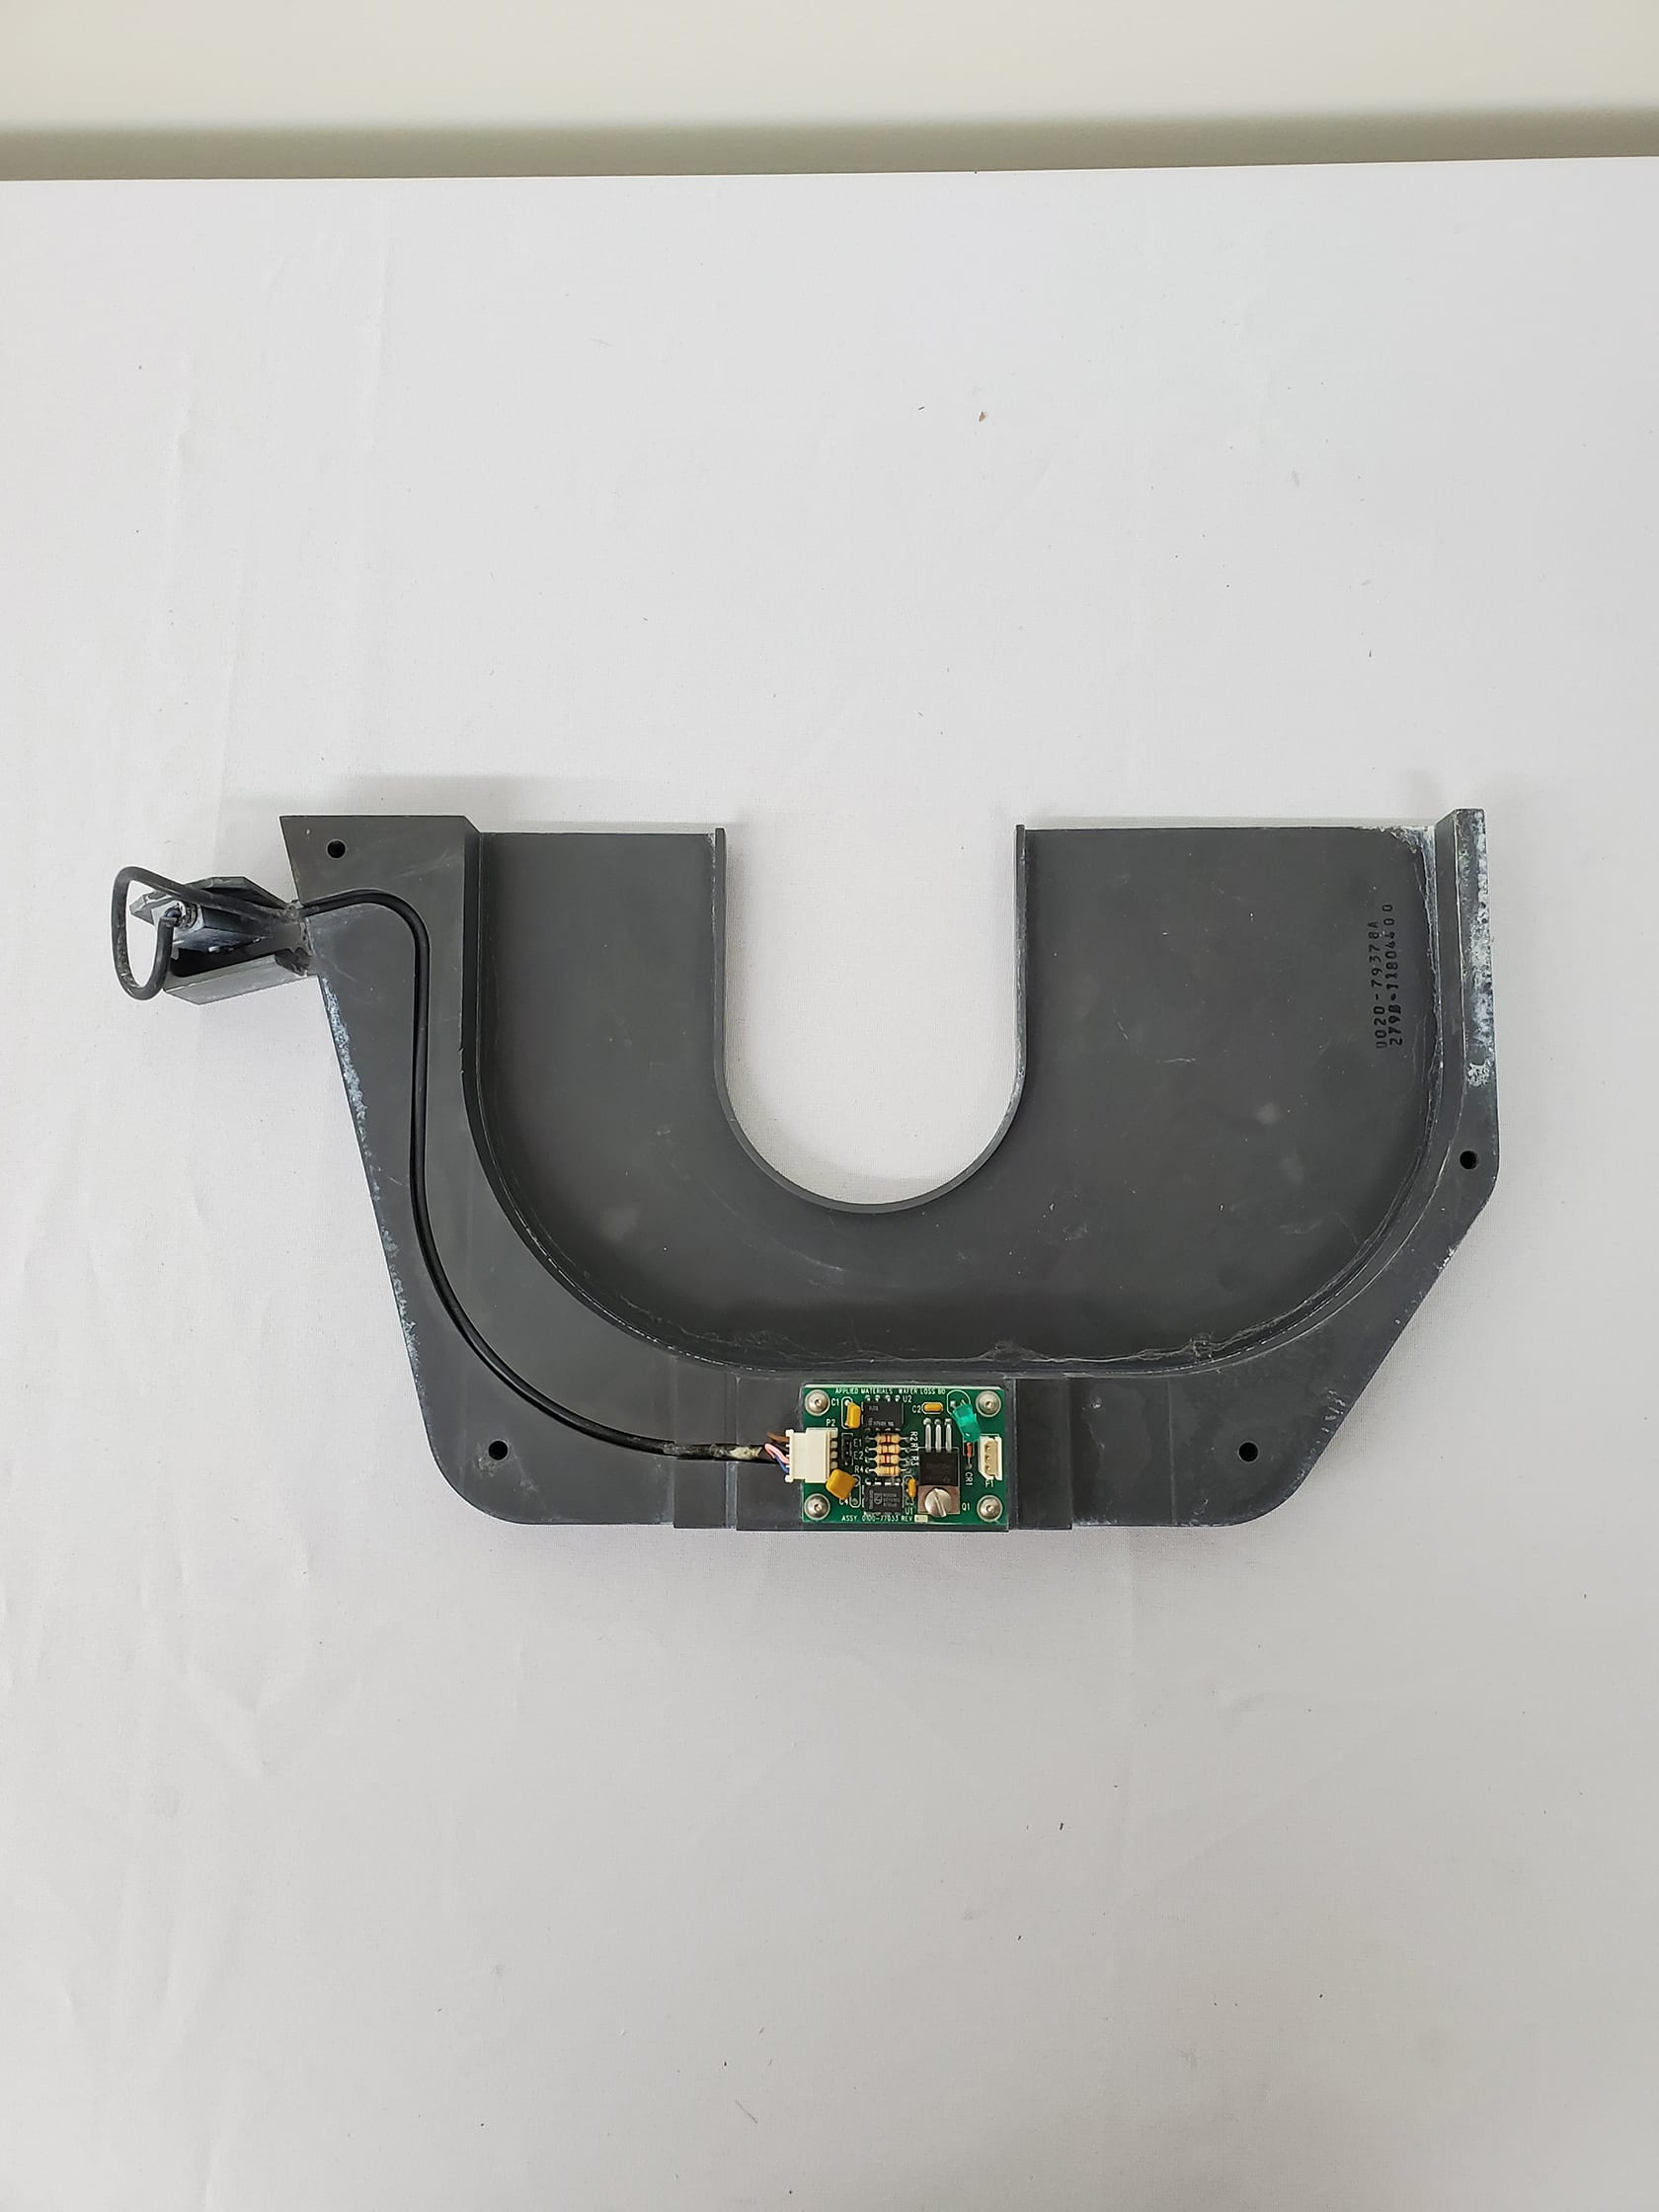 Buy Applied Materials 200mm Lower Cross Cover includes Wafer Loss Sensor and PCB